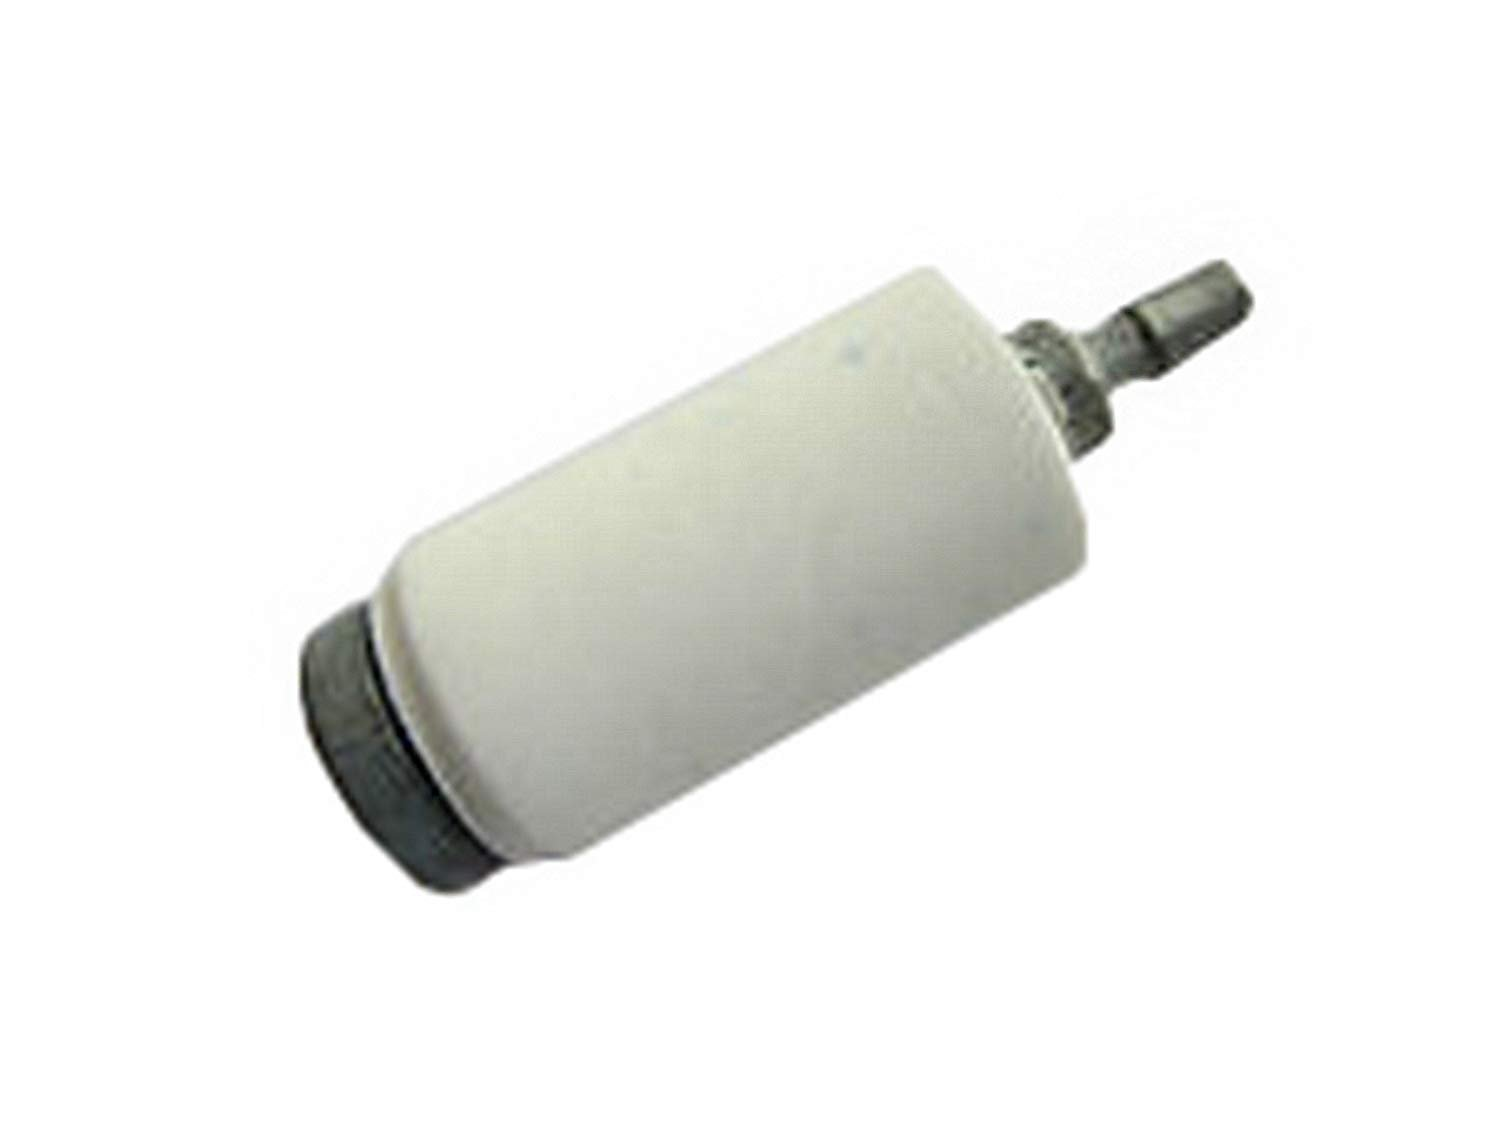 Amazon.com: Husqvarna 530095646 Fuel Filter Replacement for Gas Powered  Chainsaws: Garden & Outdoor